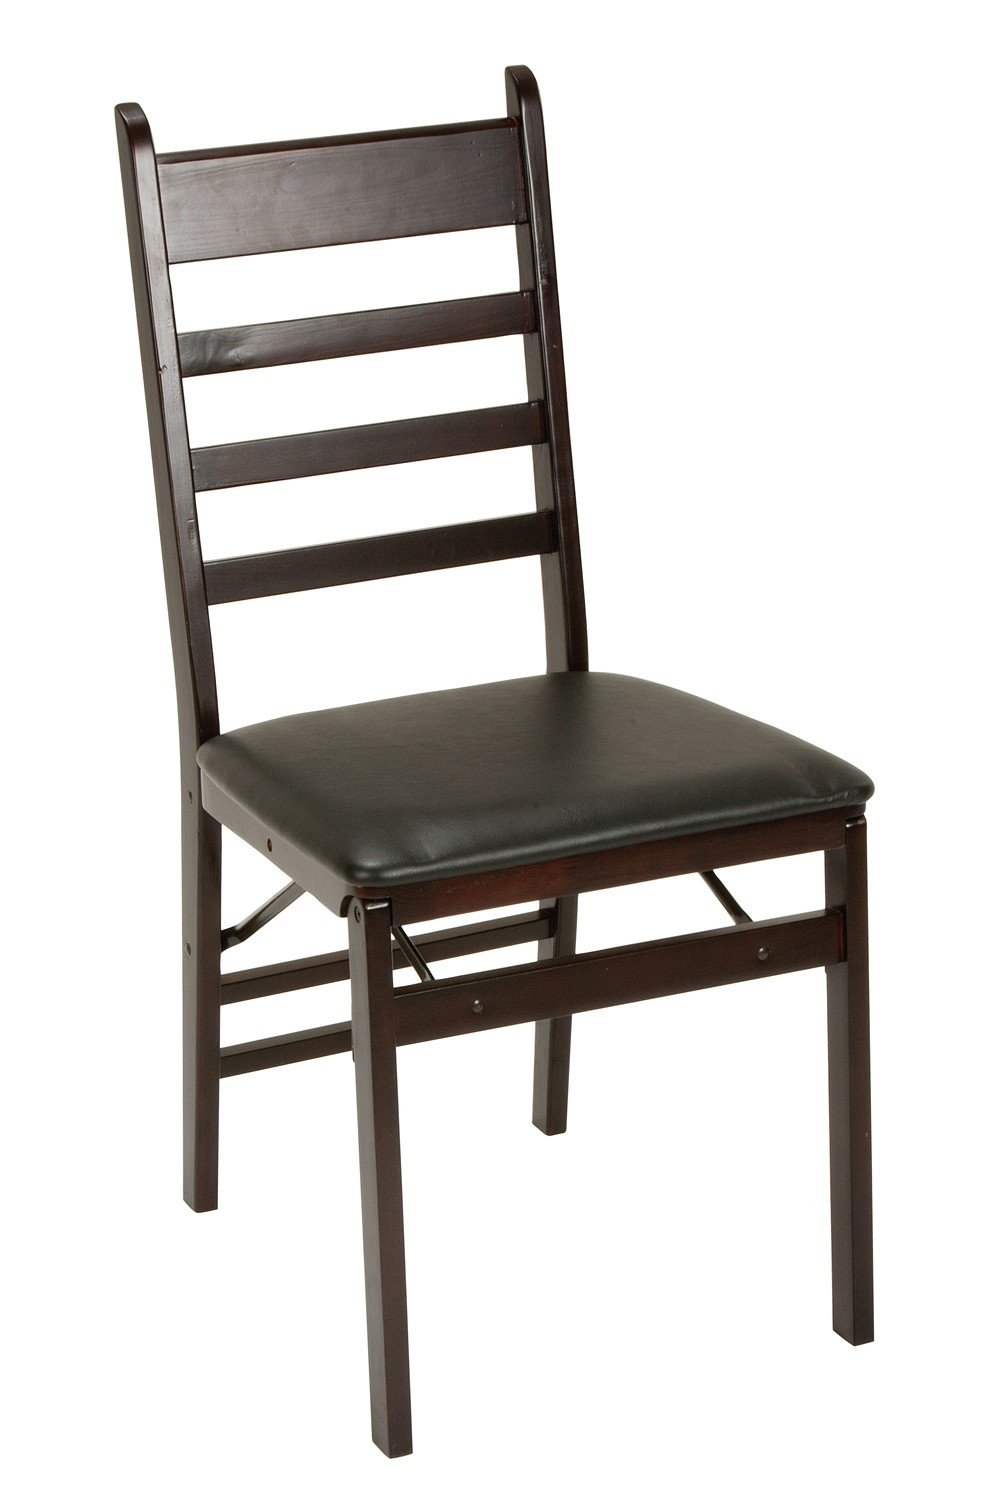 Merveilleux Cosco Espresso Wood Folding Chair With Vinyl Seat U0026 Ladder Back (2 Pack)